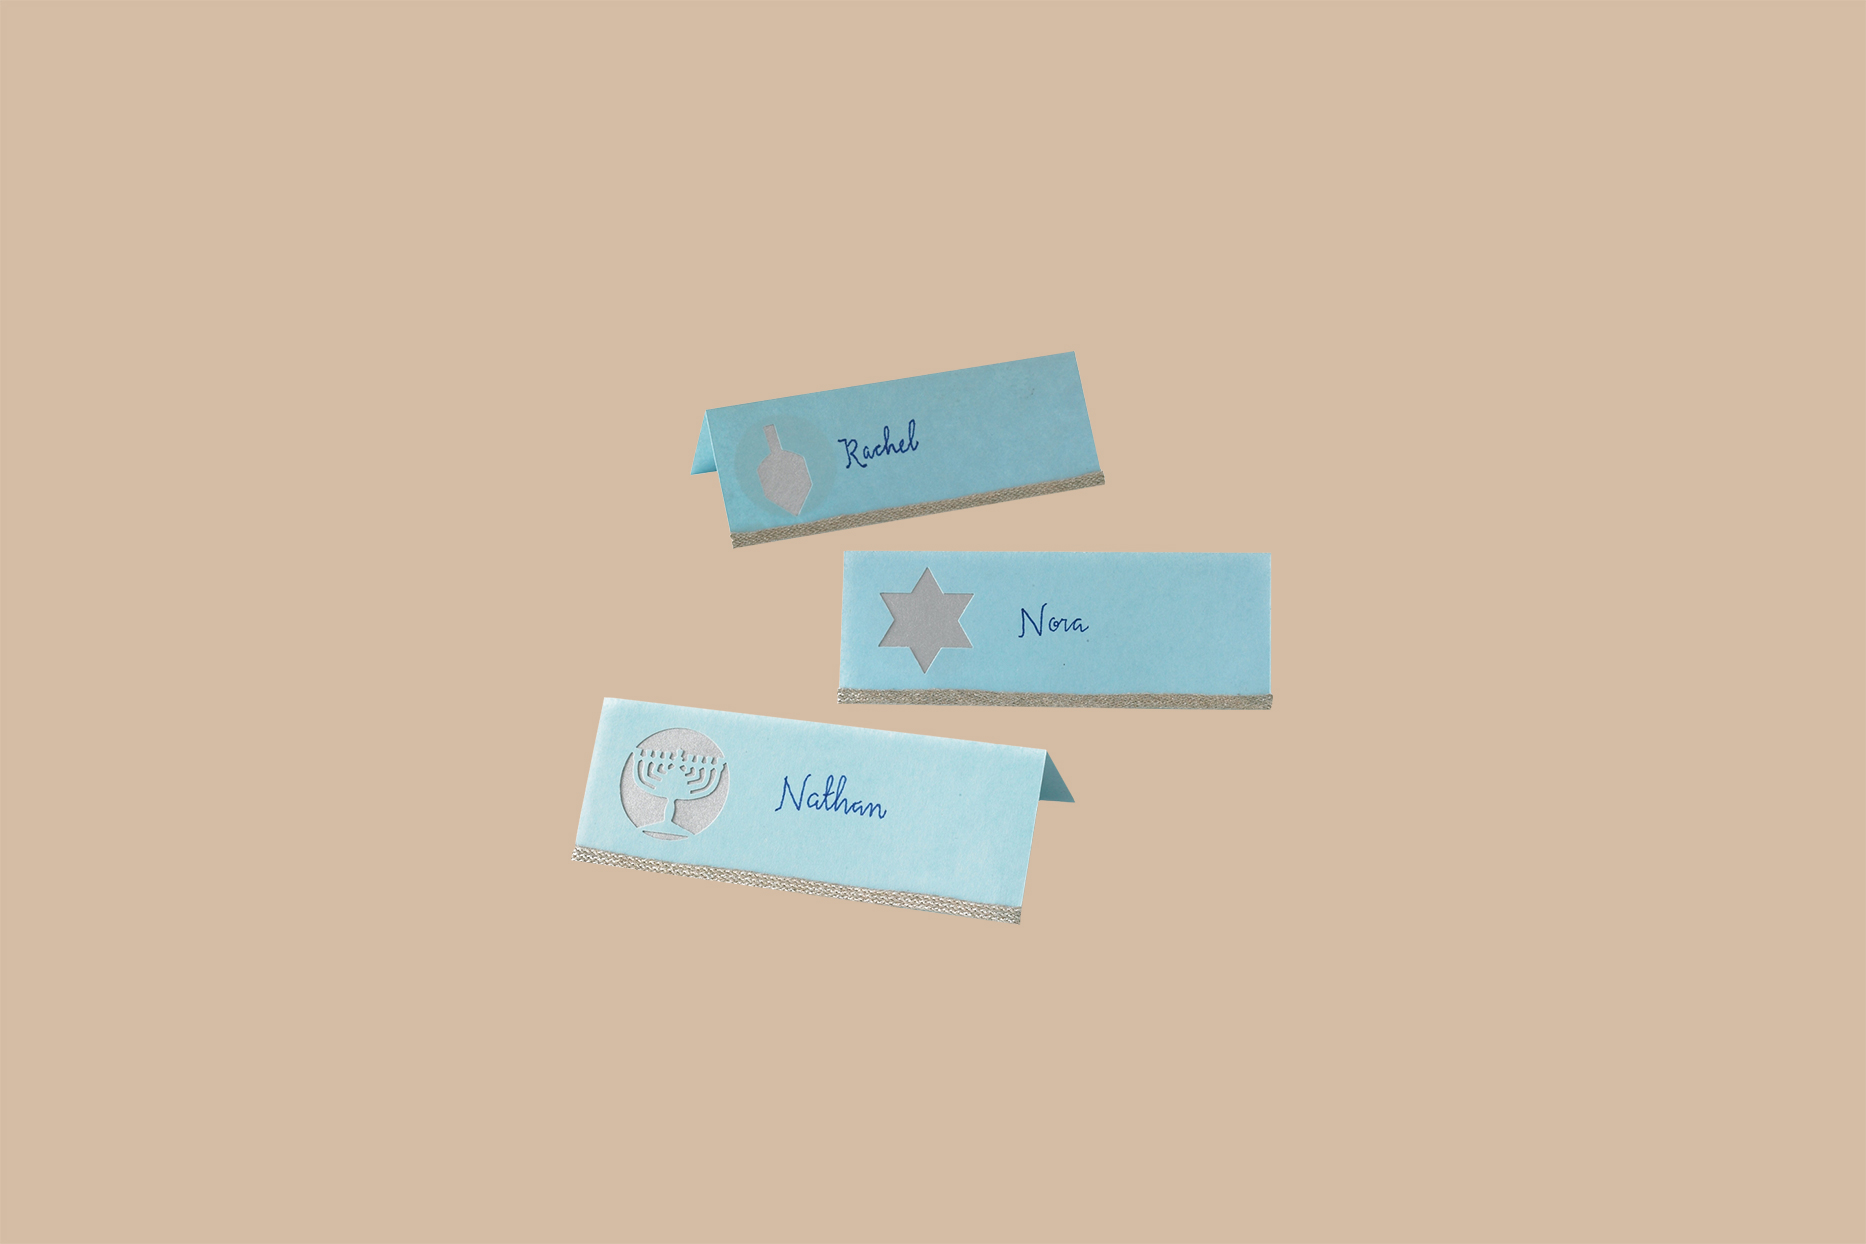 hanukkah place cards with names